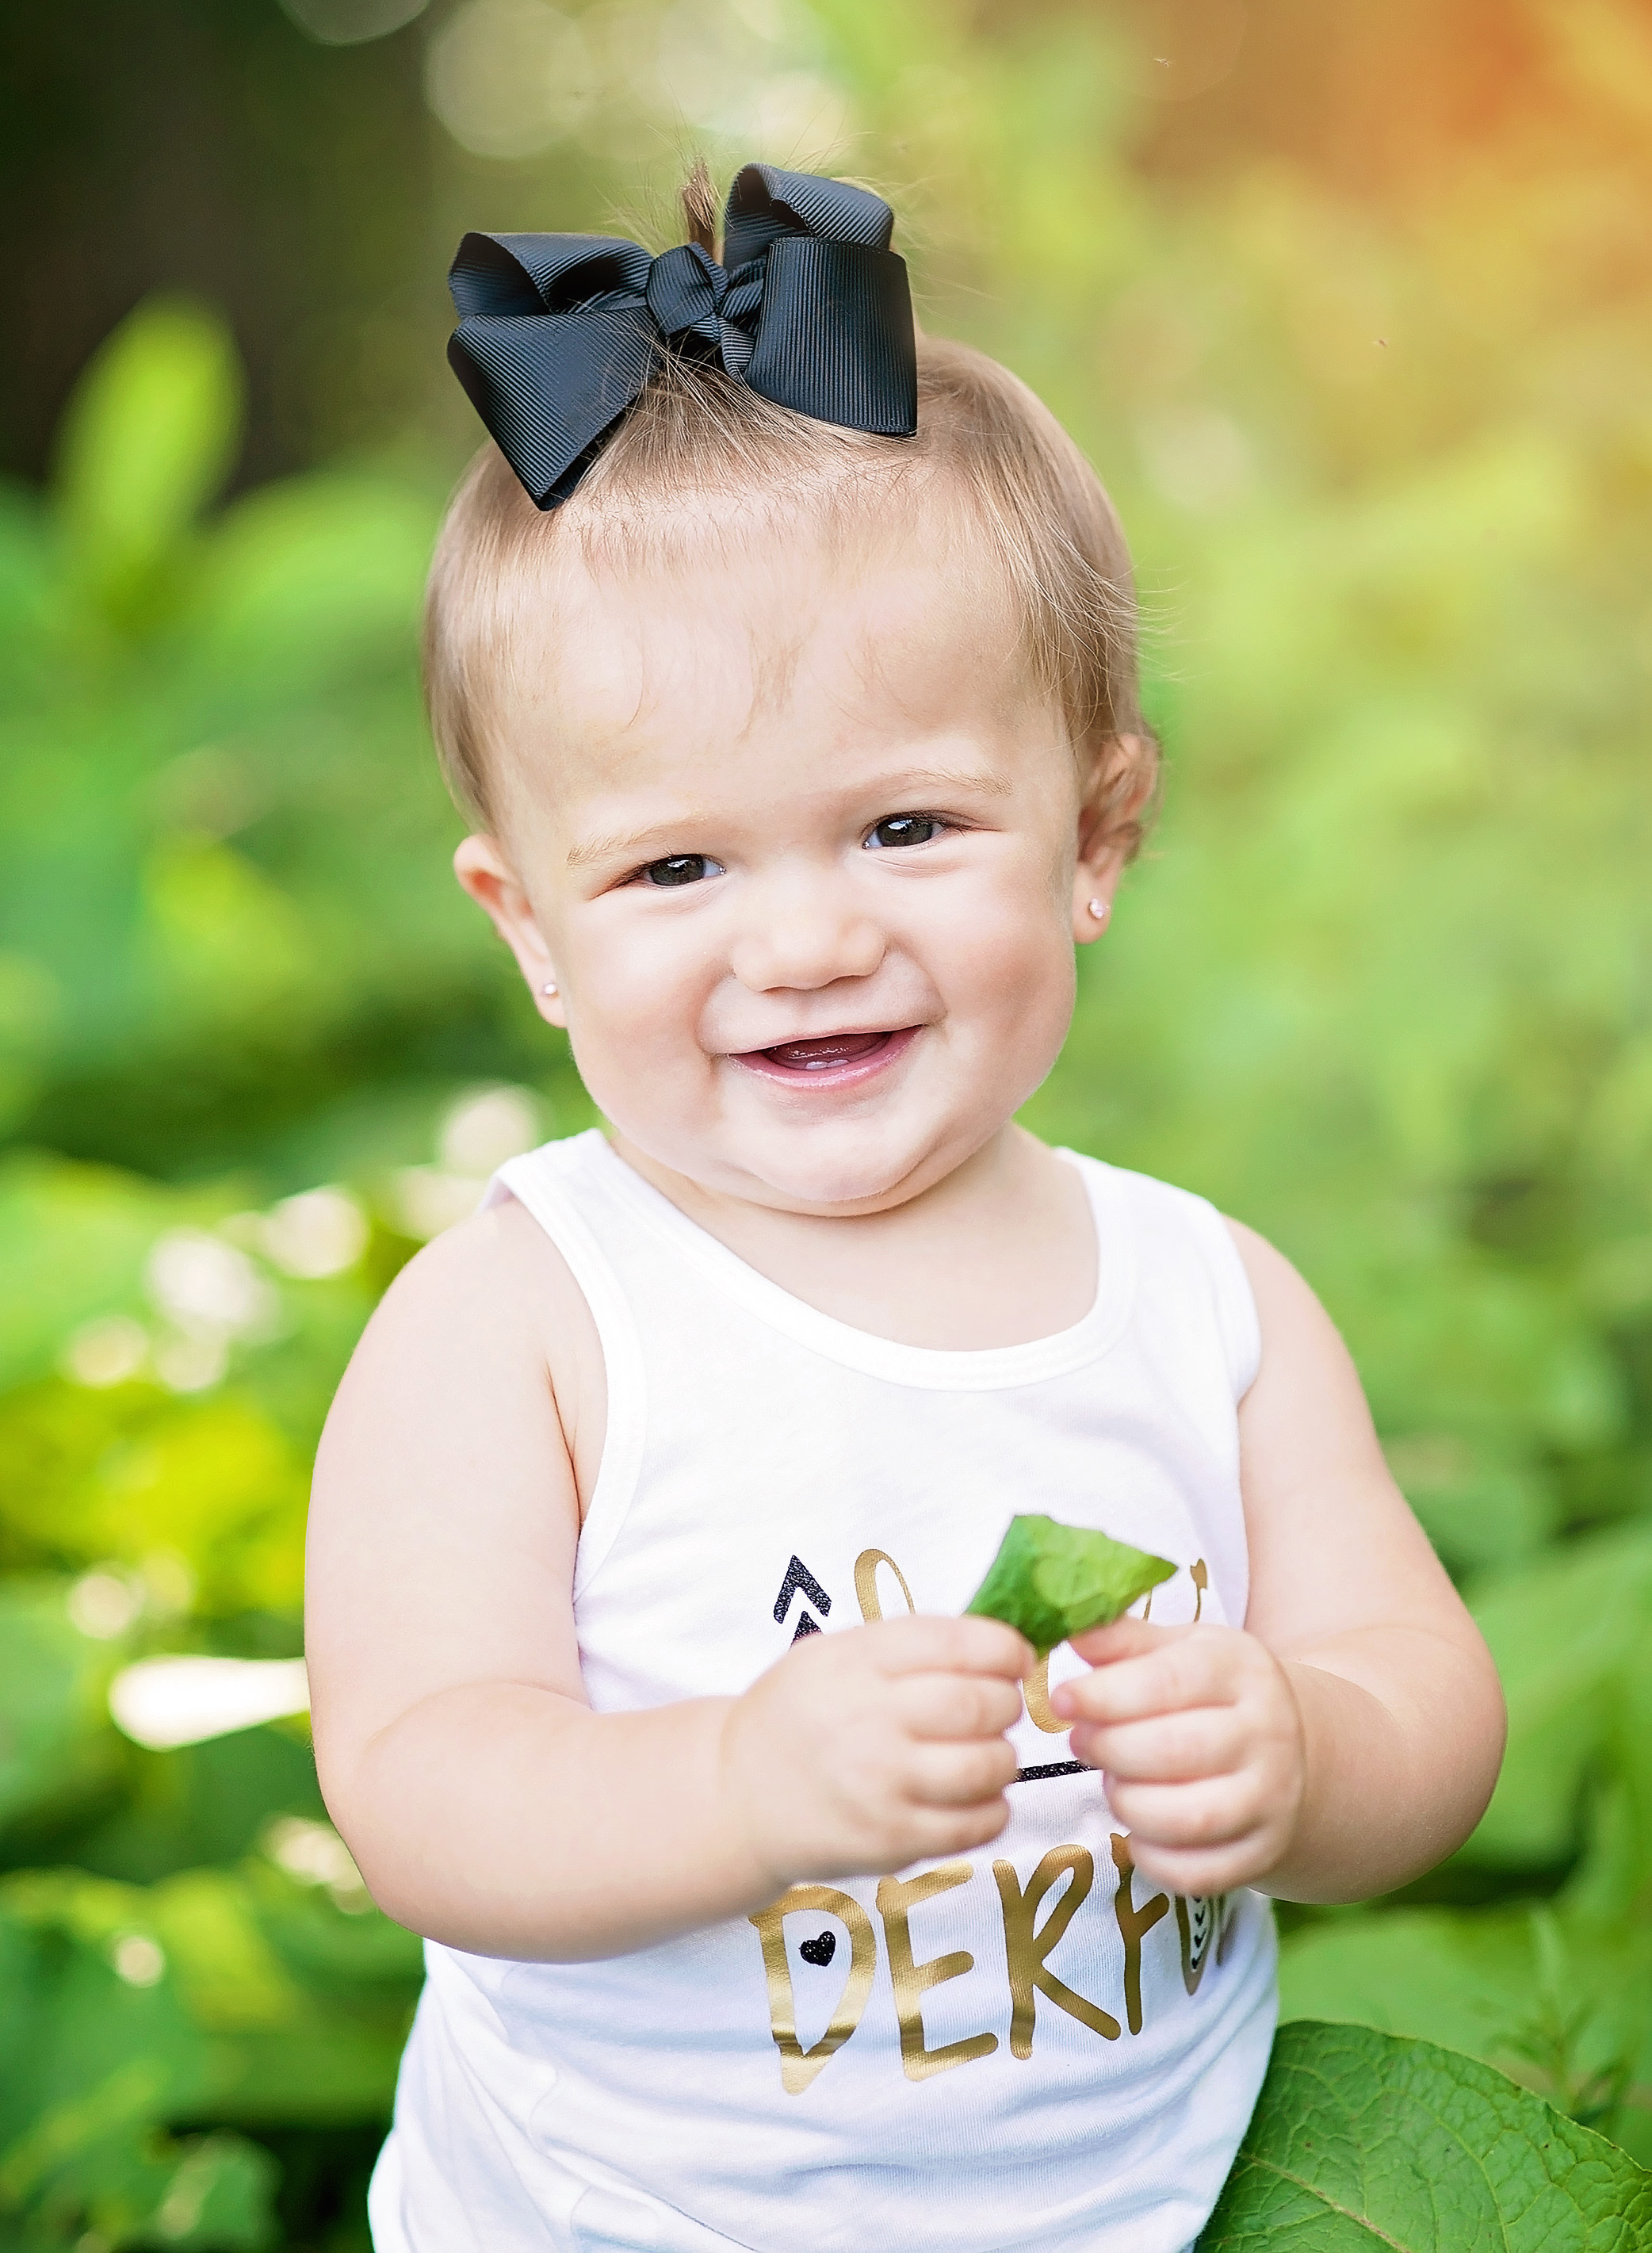 baby girl with black bow